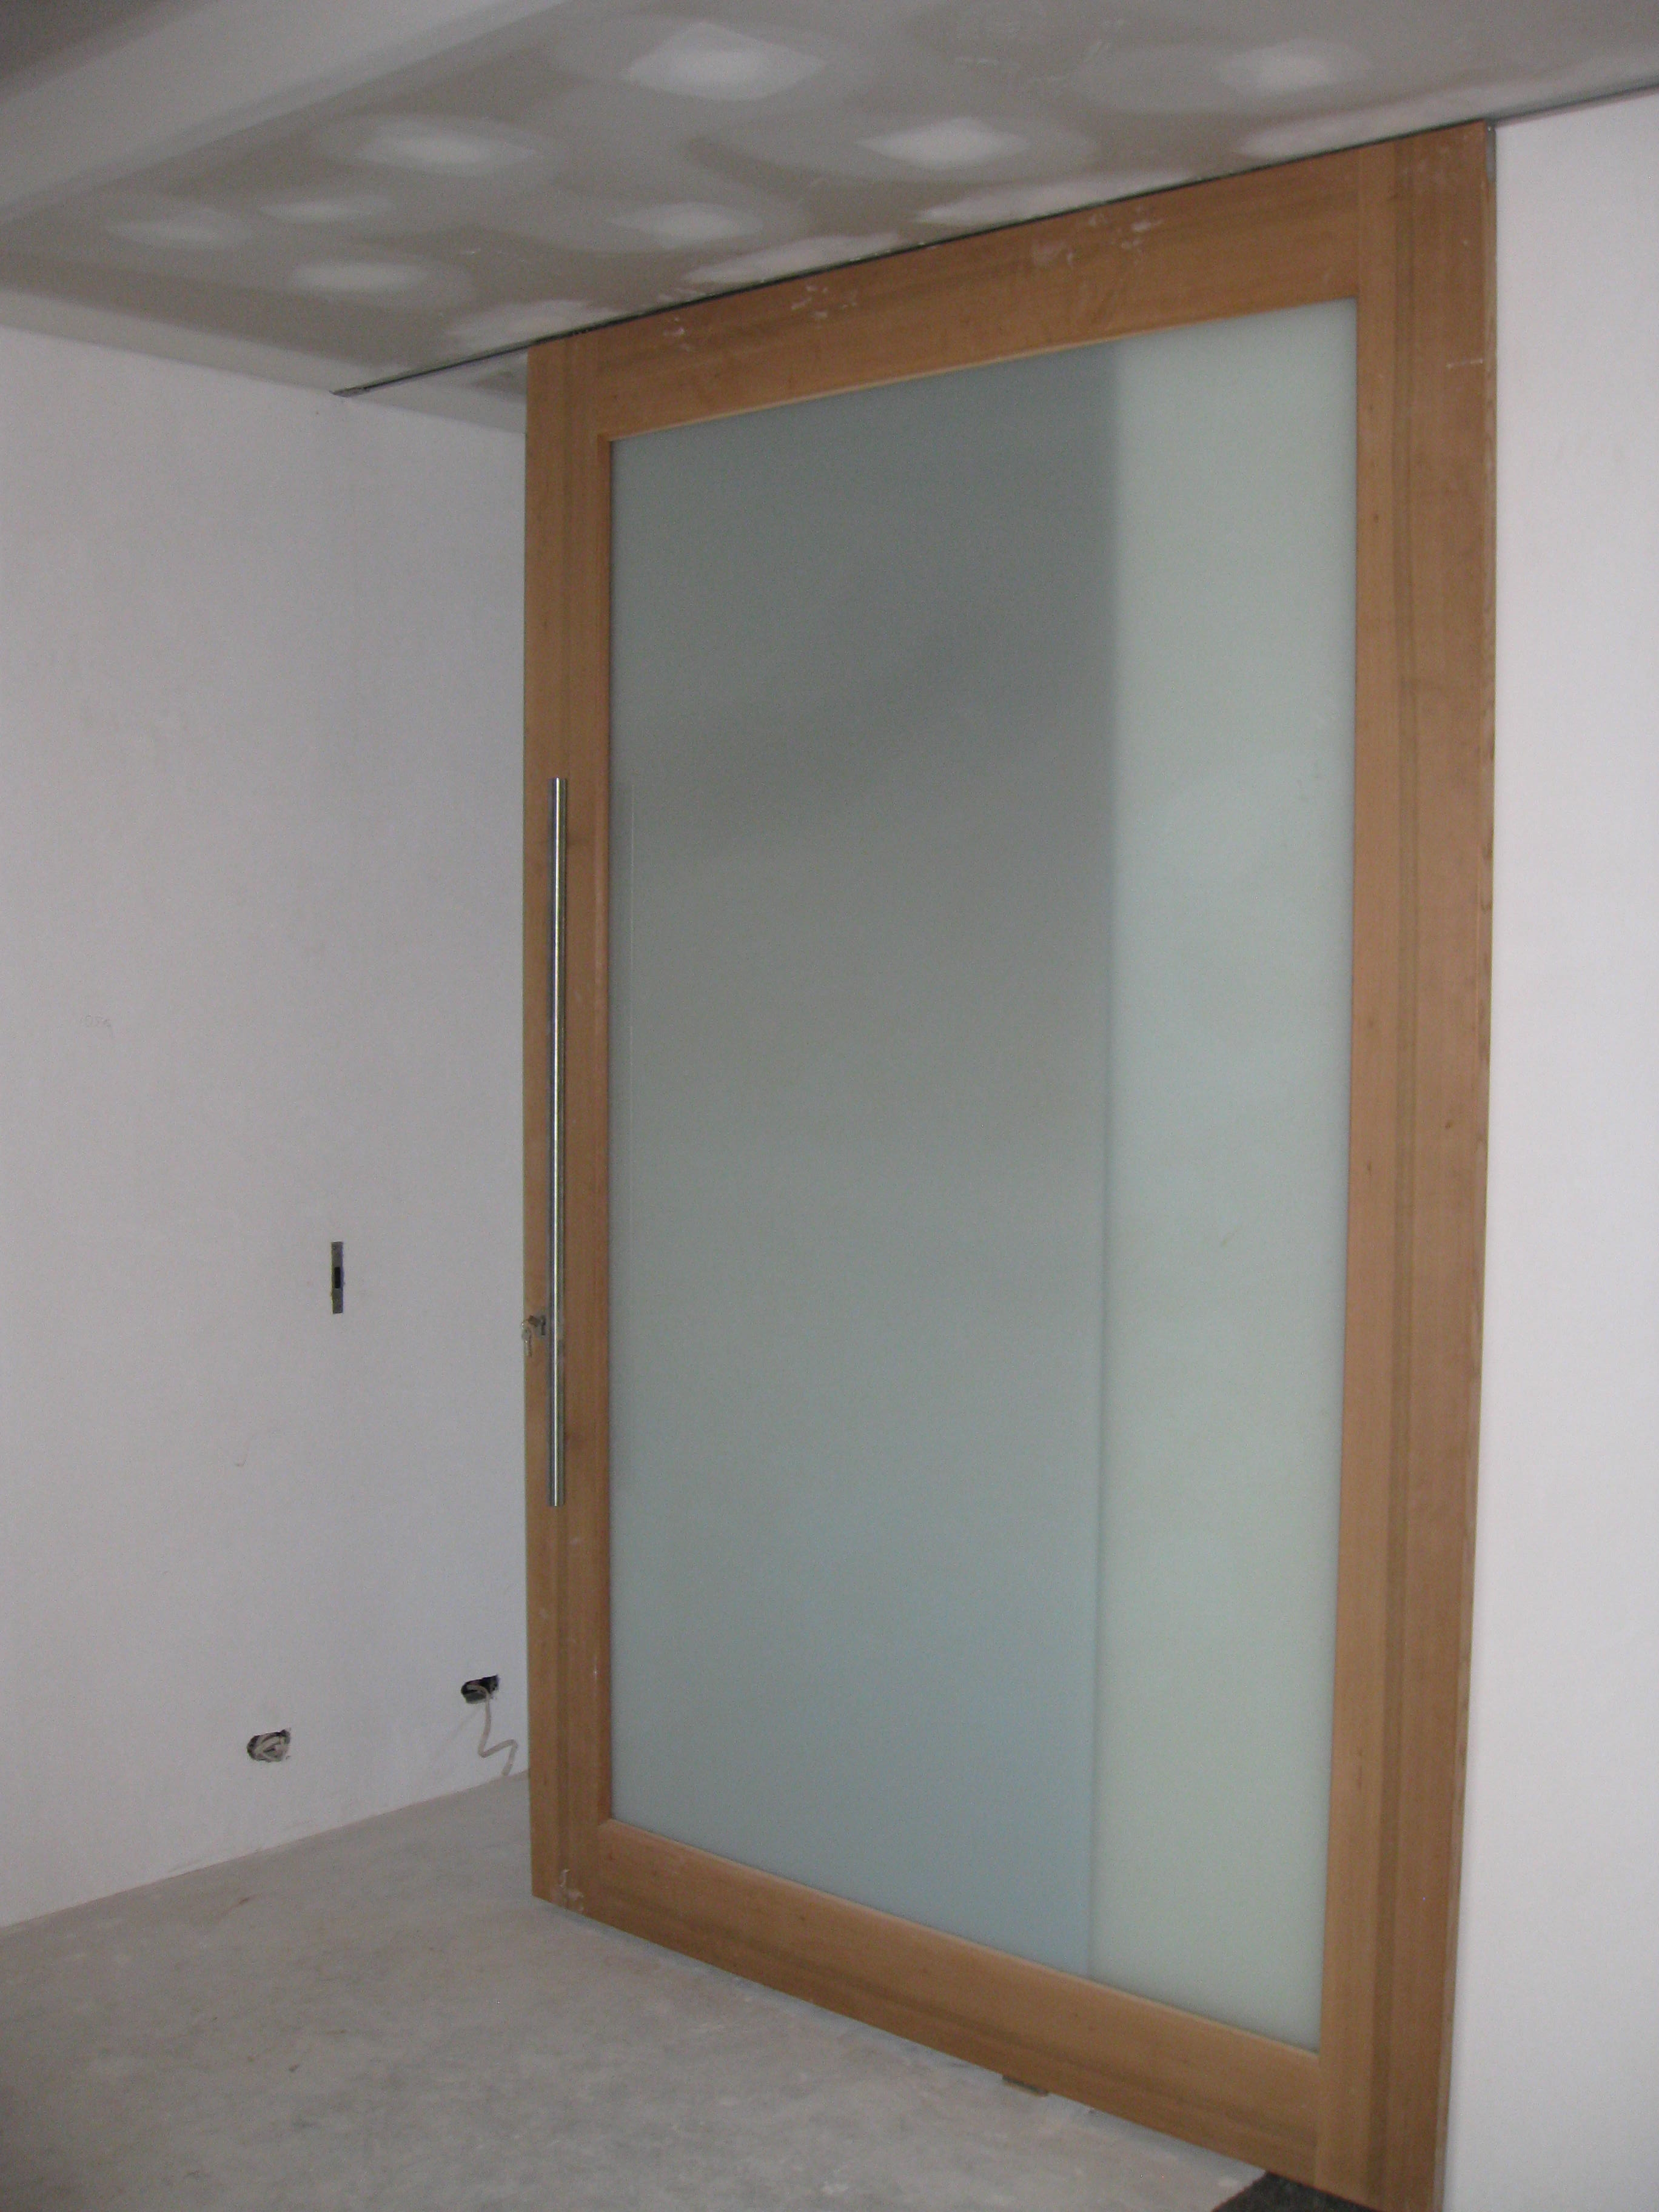 Concealed Cavity Sliding Door TracksConcealed Cavity Sliding Door Tracks